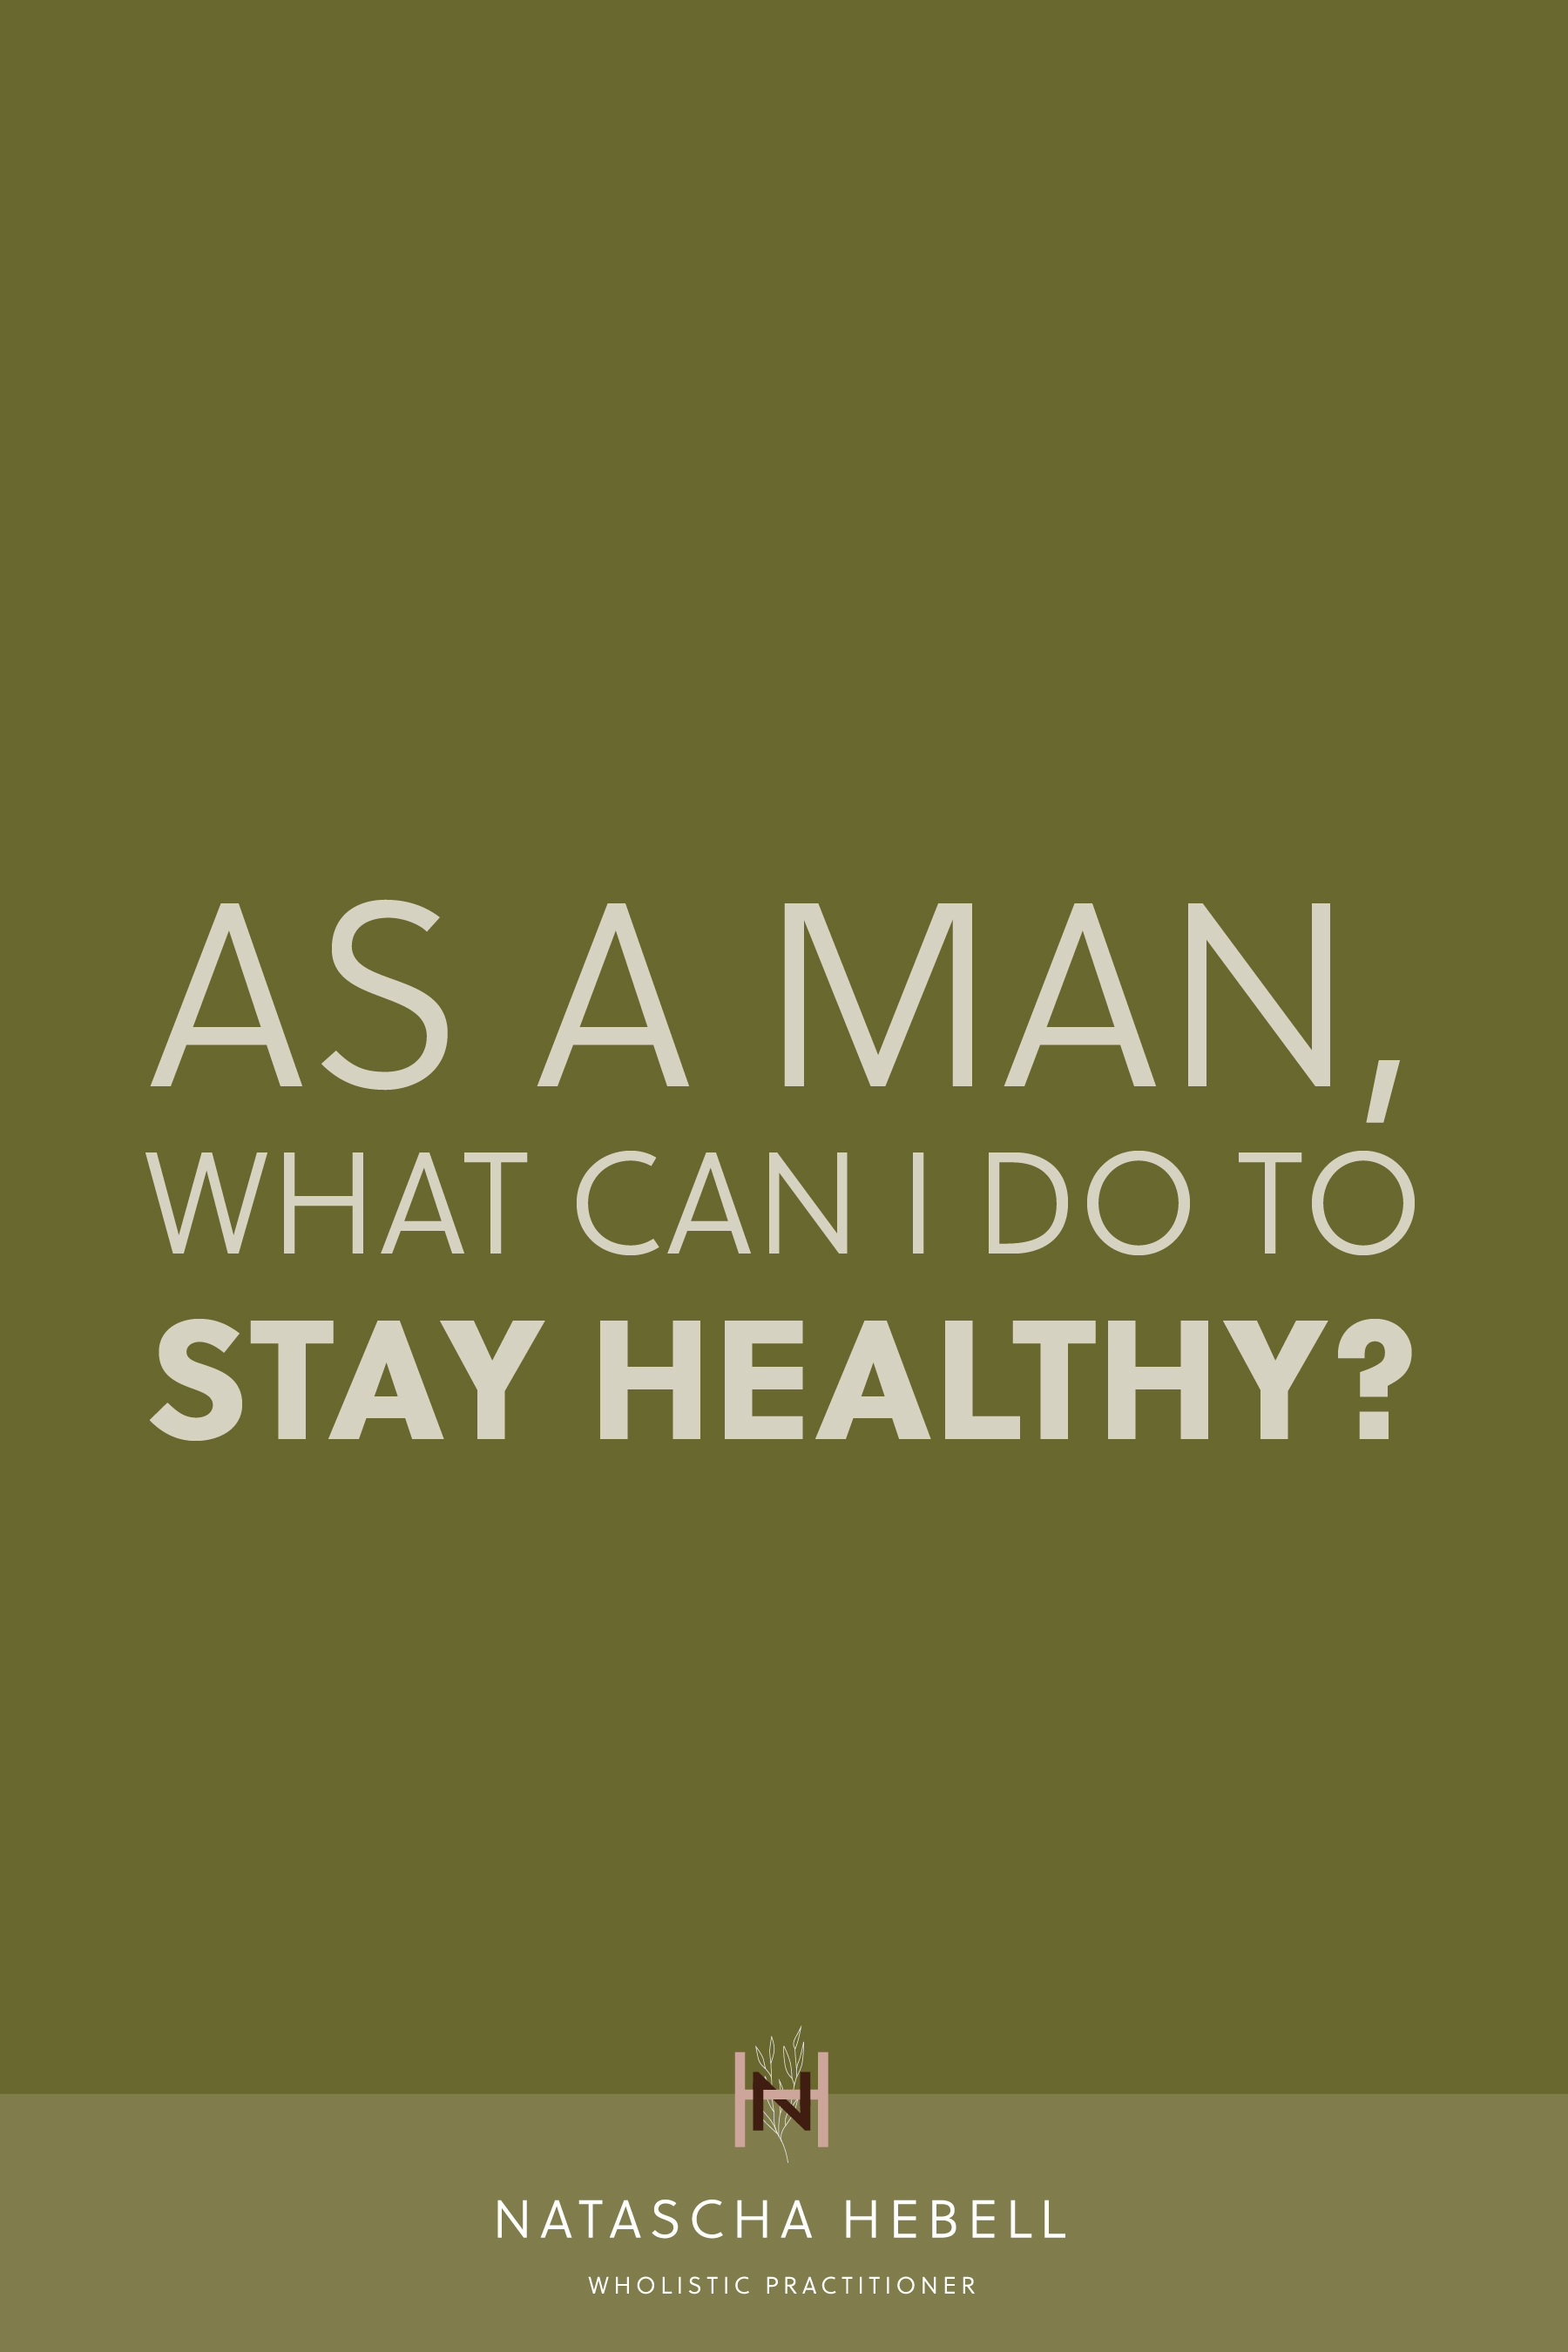 As a man, what can I do to stay healthy? | Natascha Hebell, Wholistic Practitioner